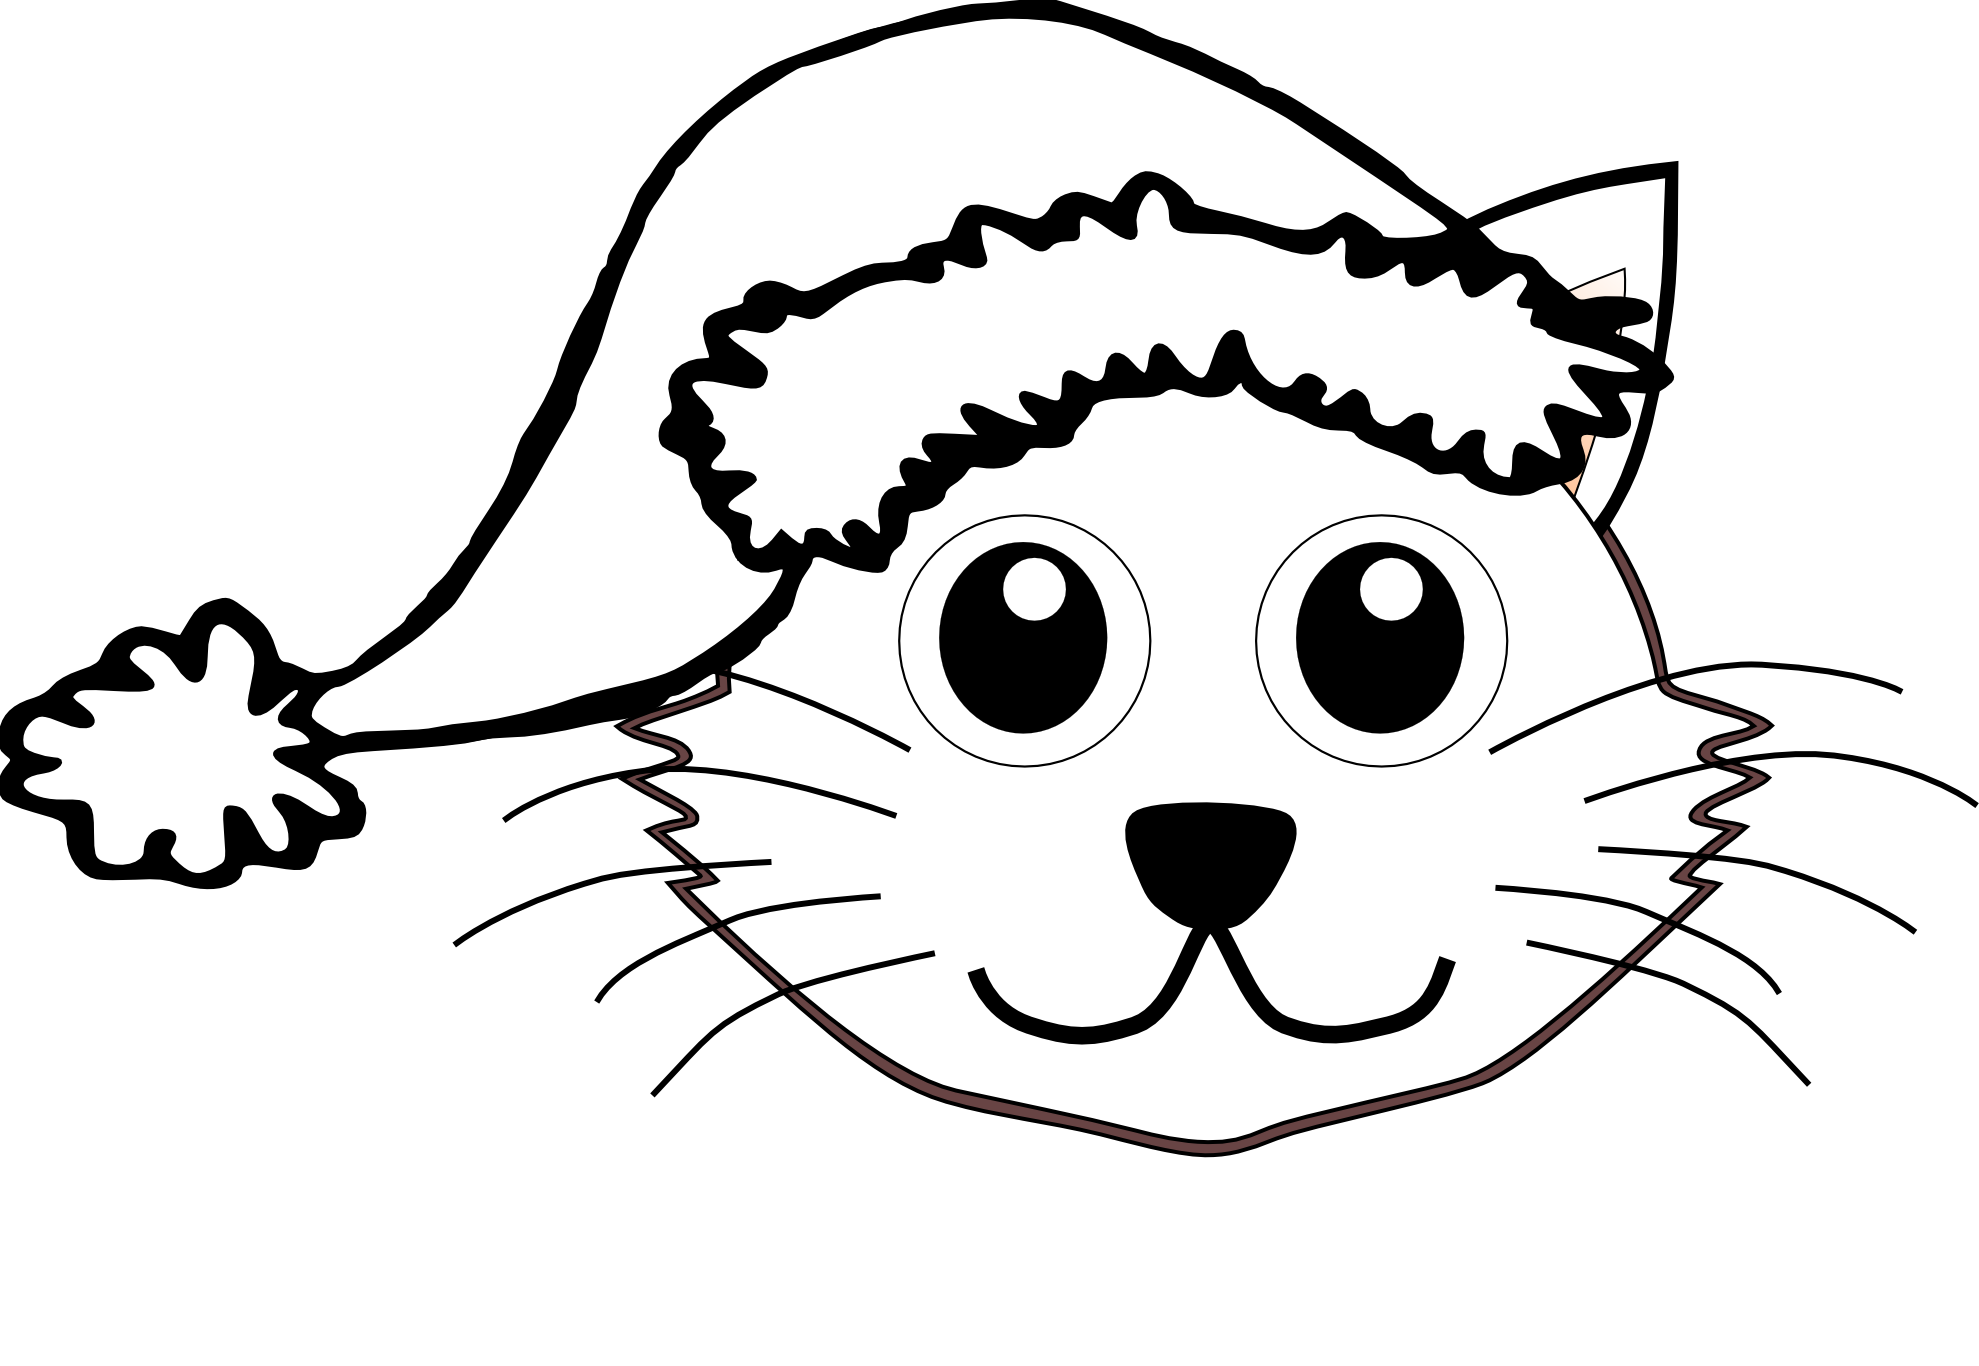 Pictures Of Cat In The Hat | Free download best Pictures Of Cat In ...